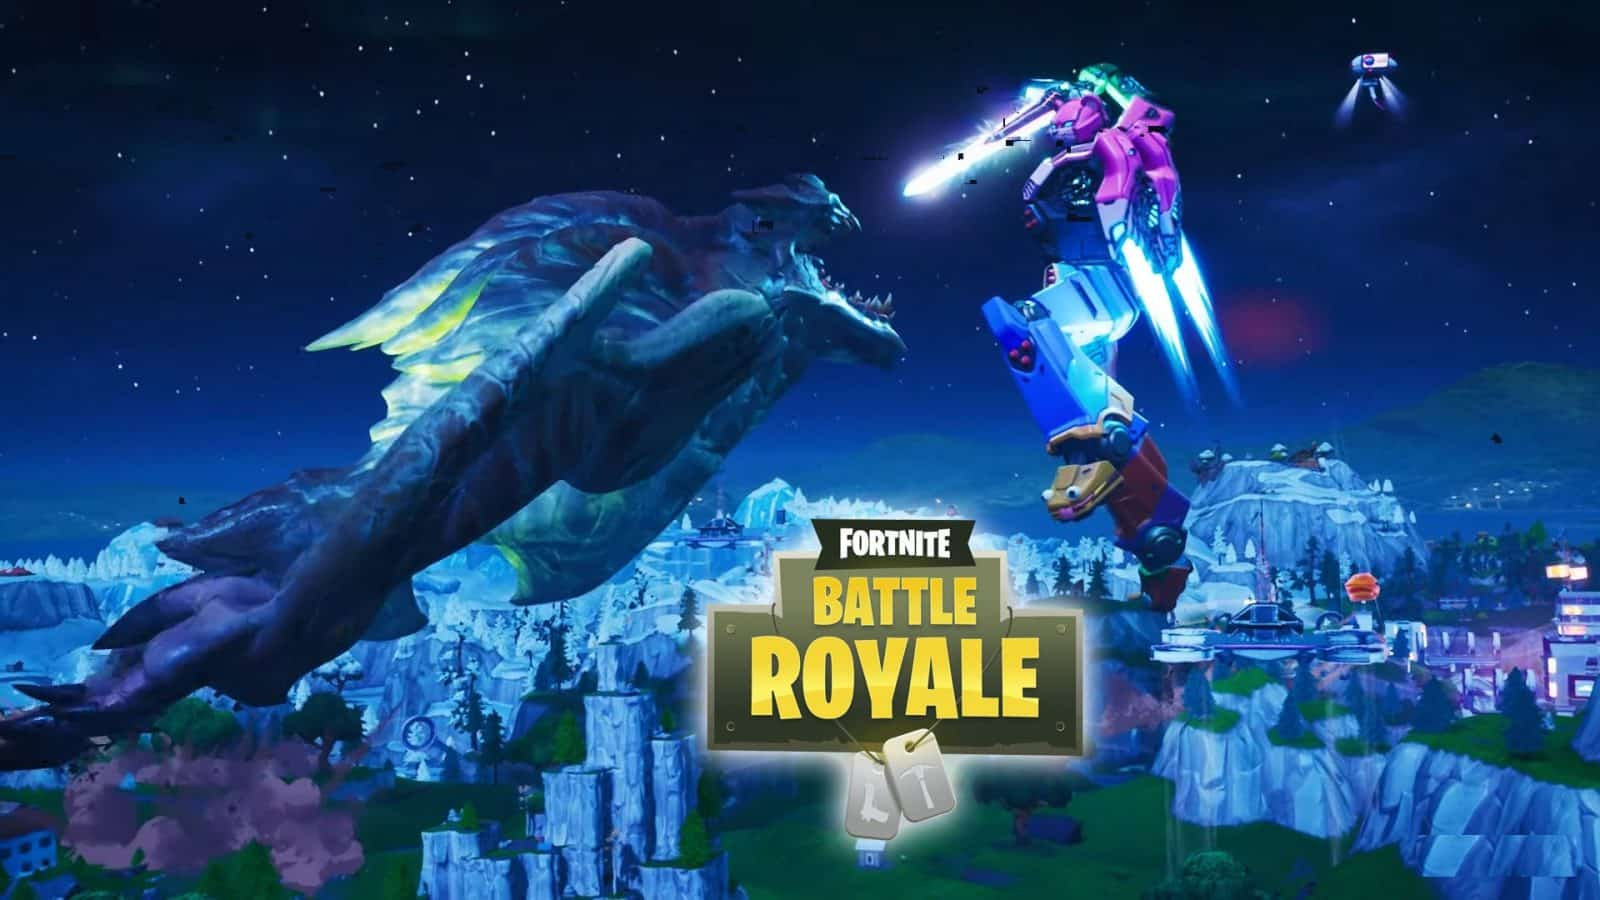 Who Won The Fight Between The Robot and the Monster [Fortnite Event]